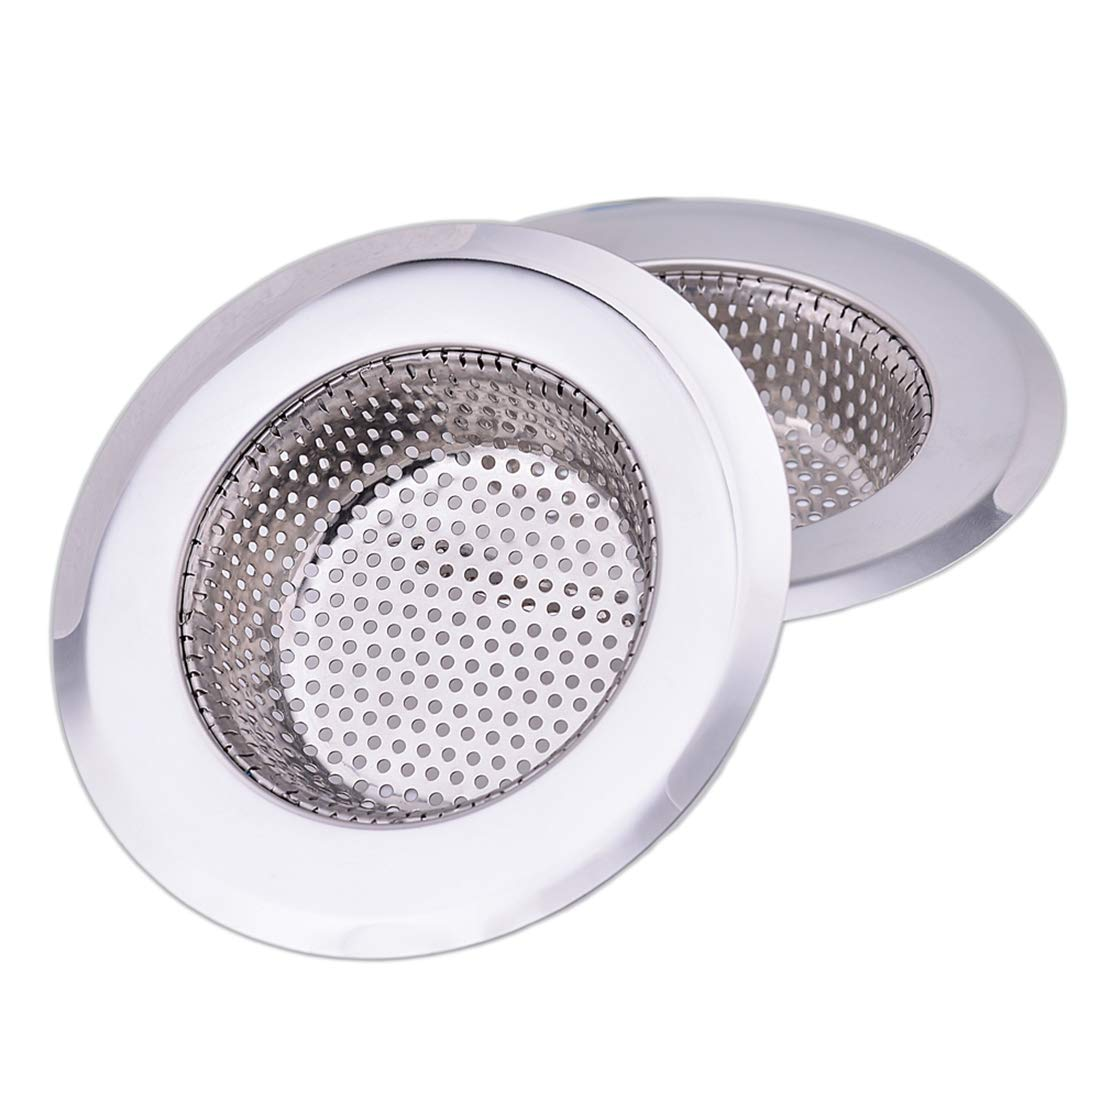 CORNERJOY Kitchen Sink Strainer Basket, 4.5-inch